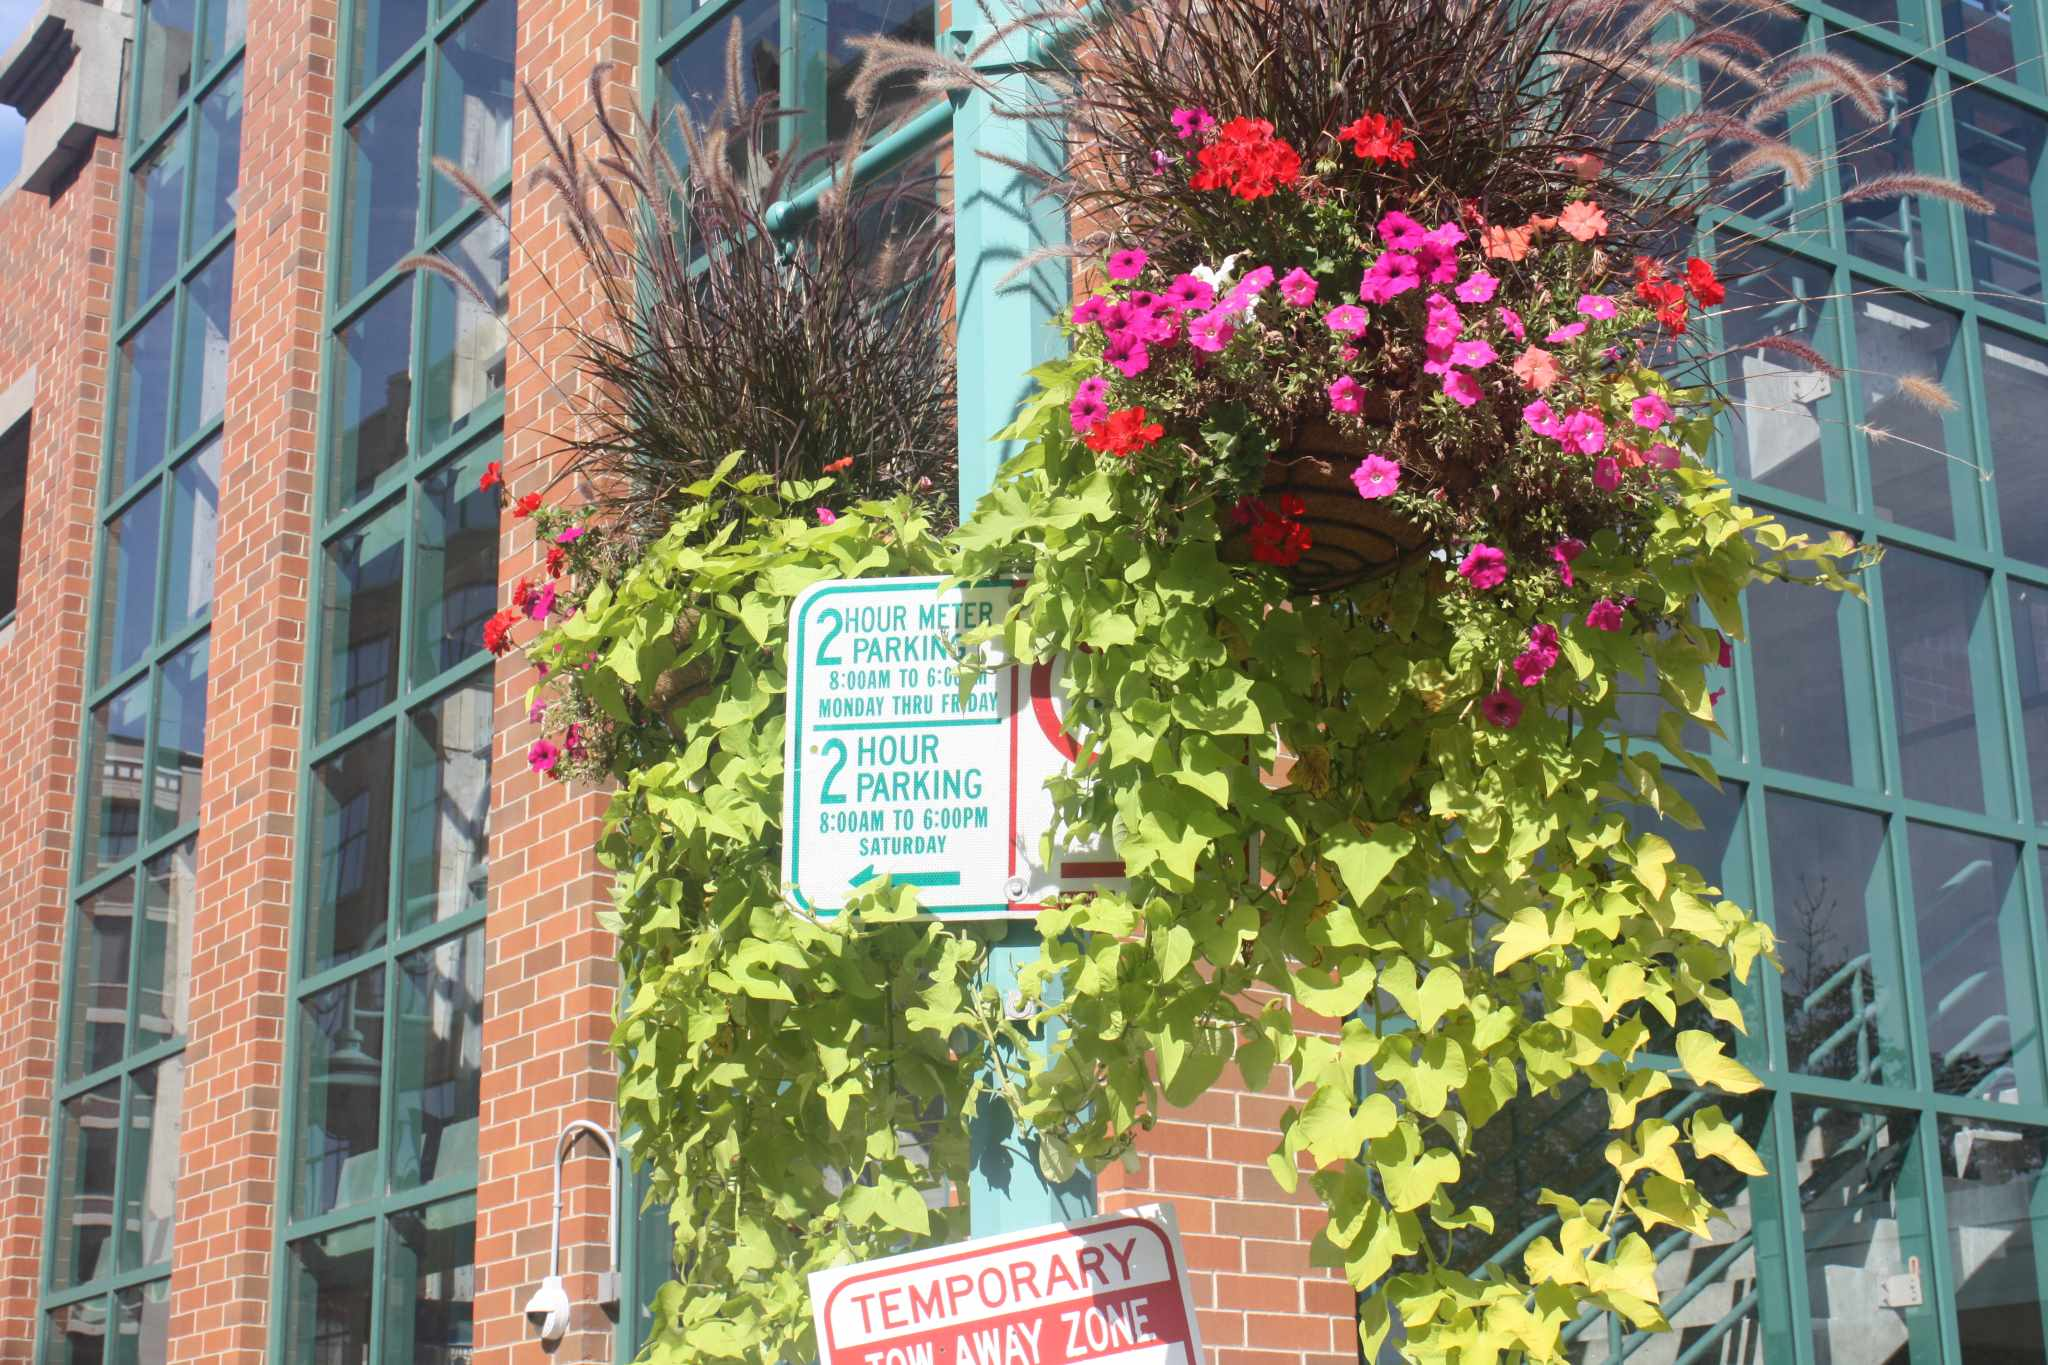 Hanging flower baskets. Photo courtesy of Cathedral Square Friends, Inc.